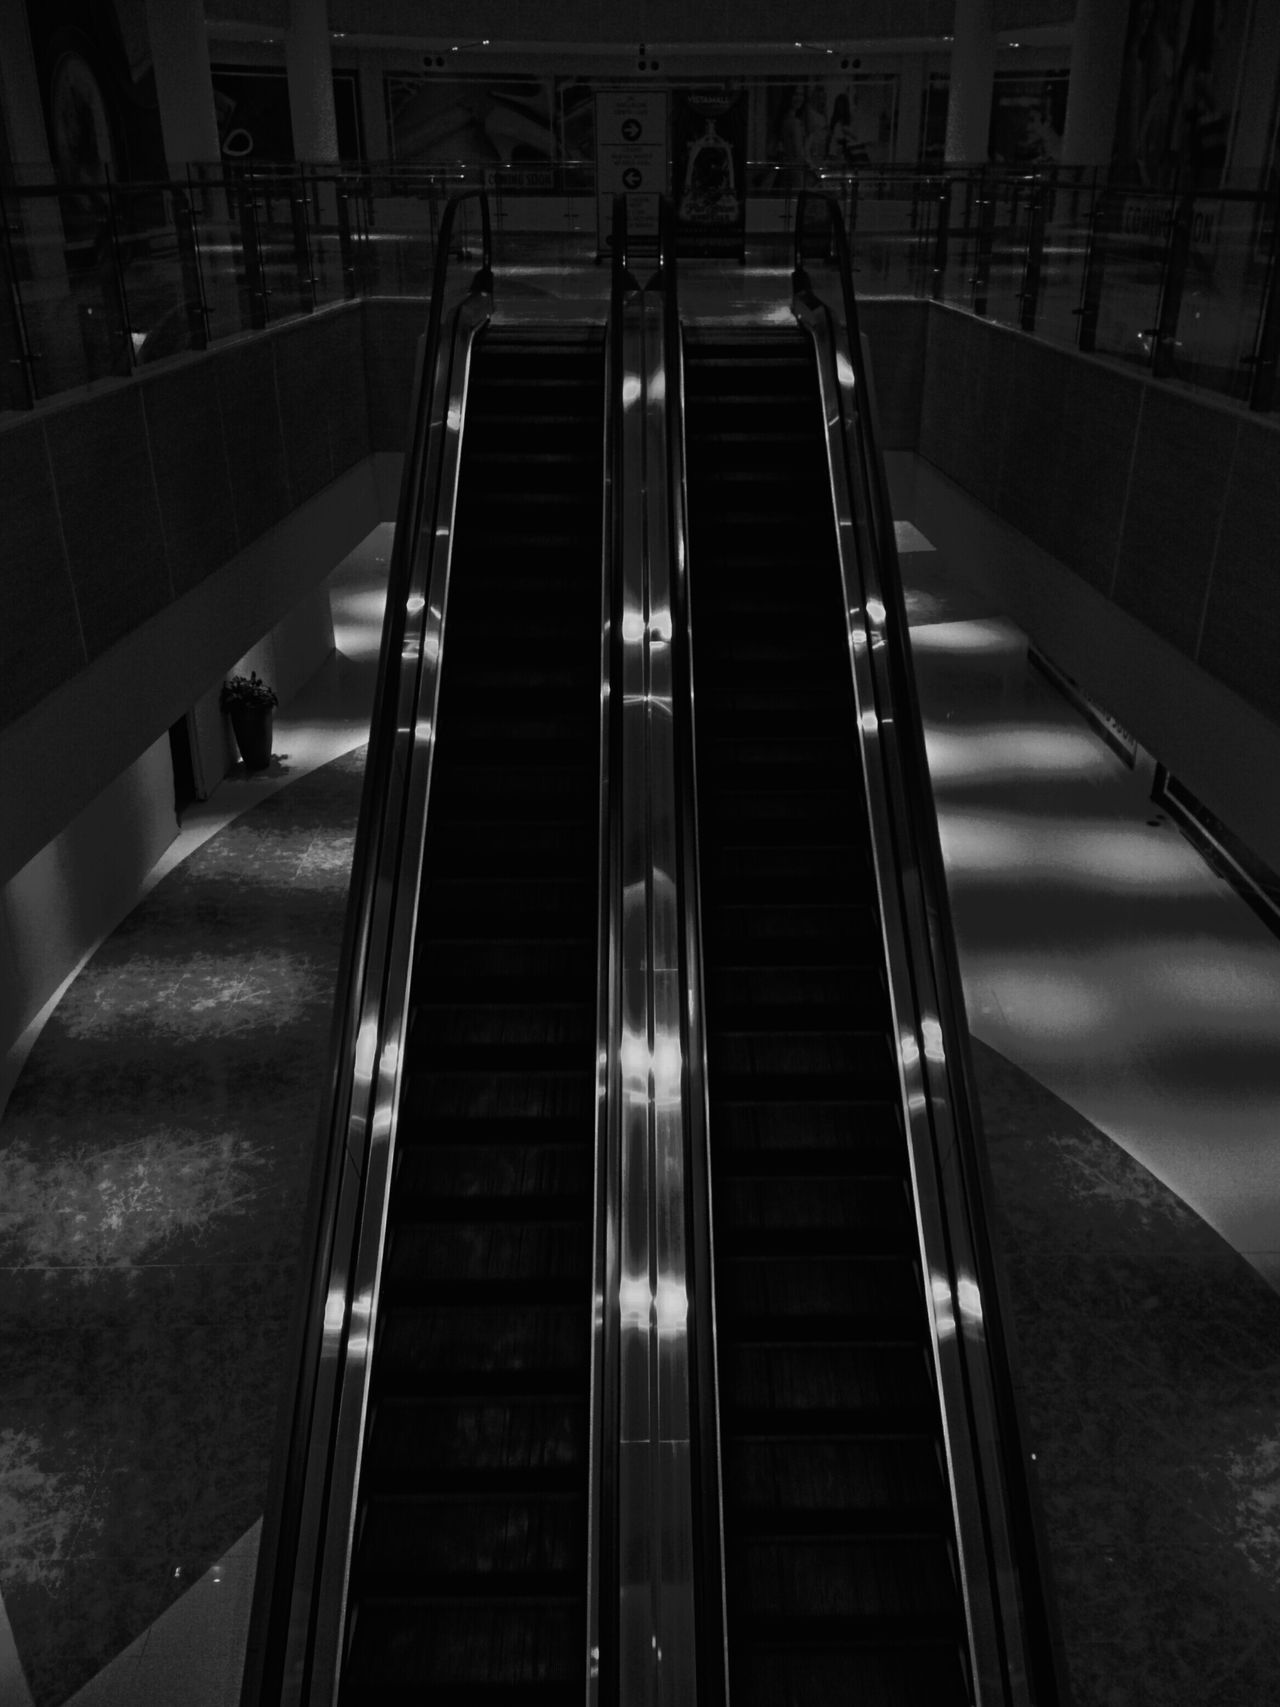 The Way Forward Steps No People Built Structure Architecture Illuminated Indoors  Staircase Night Black And White